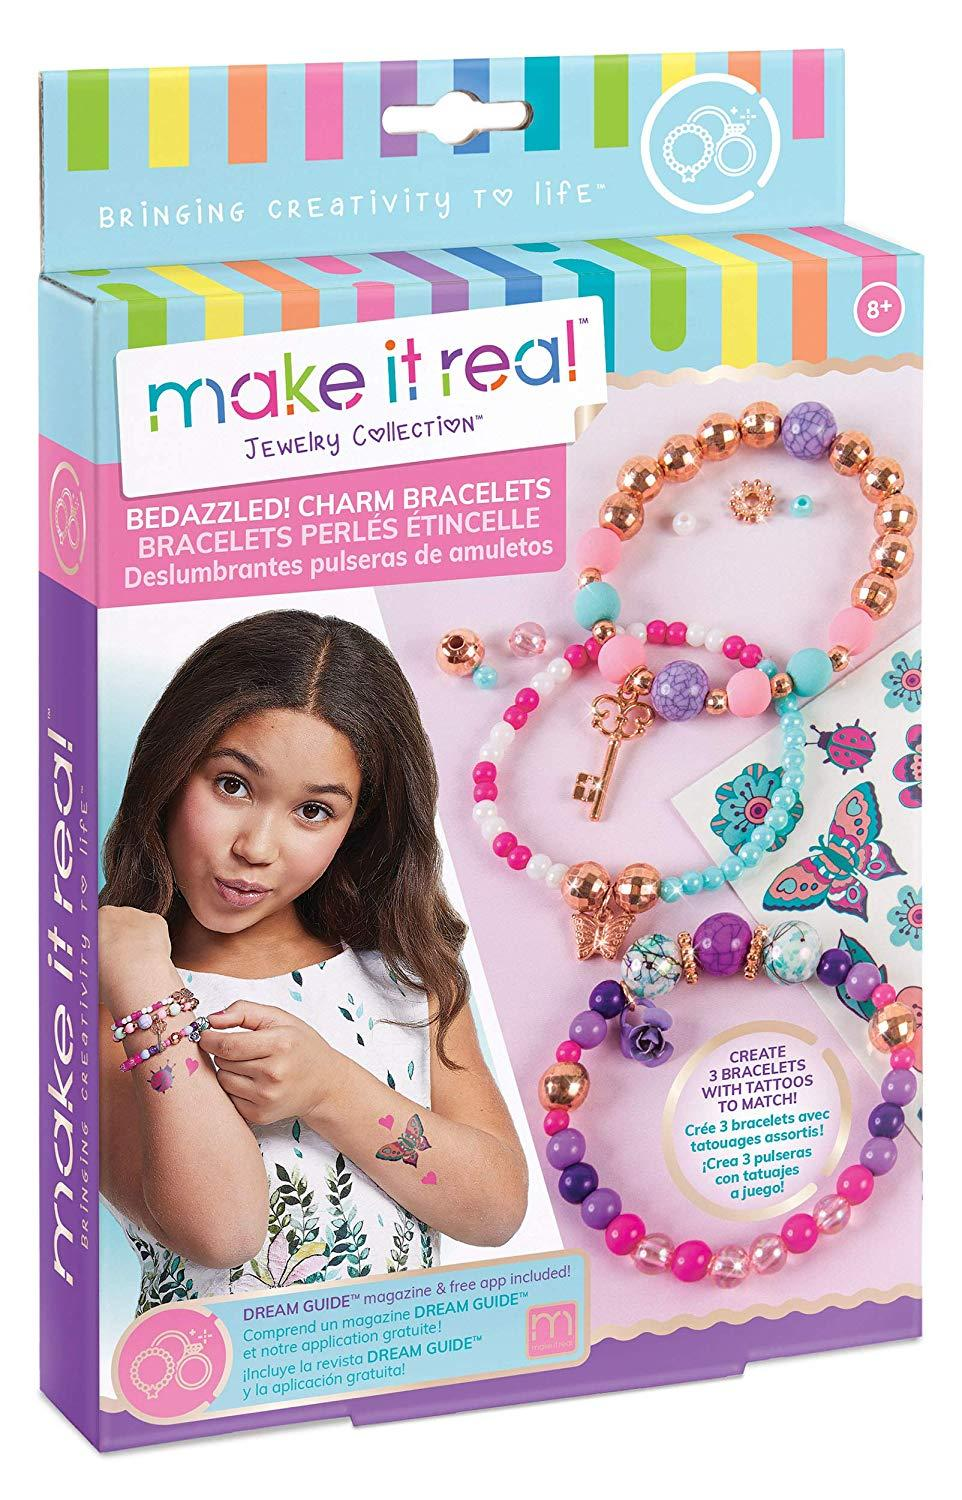 Make it real - Bedazzled! Charm Bracelets (1202)